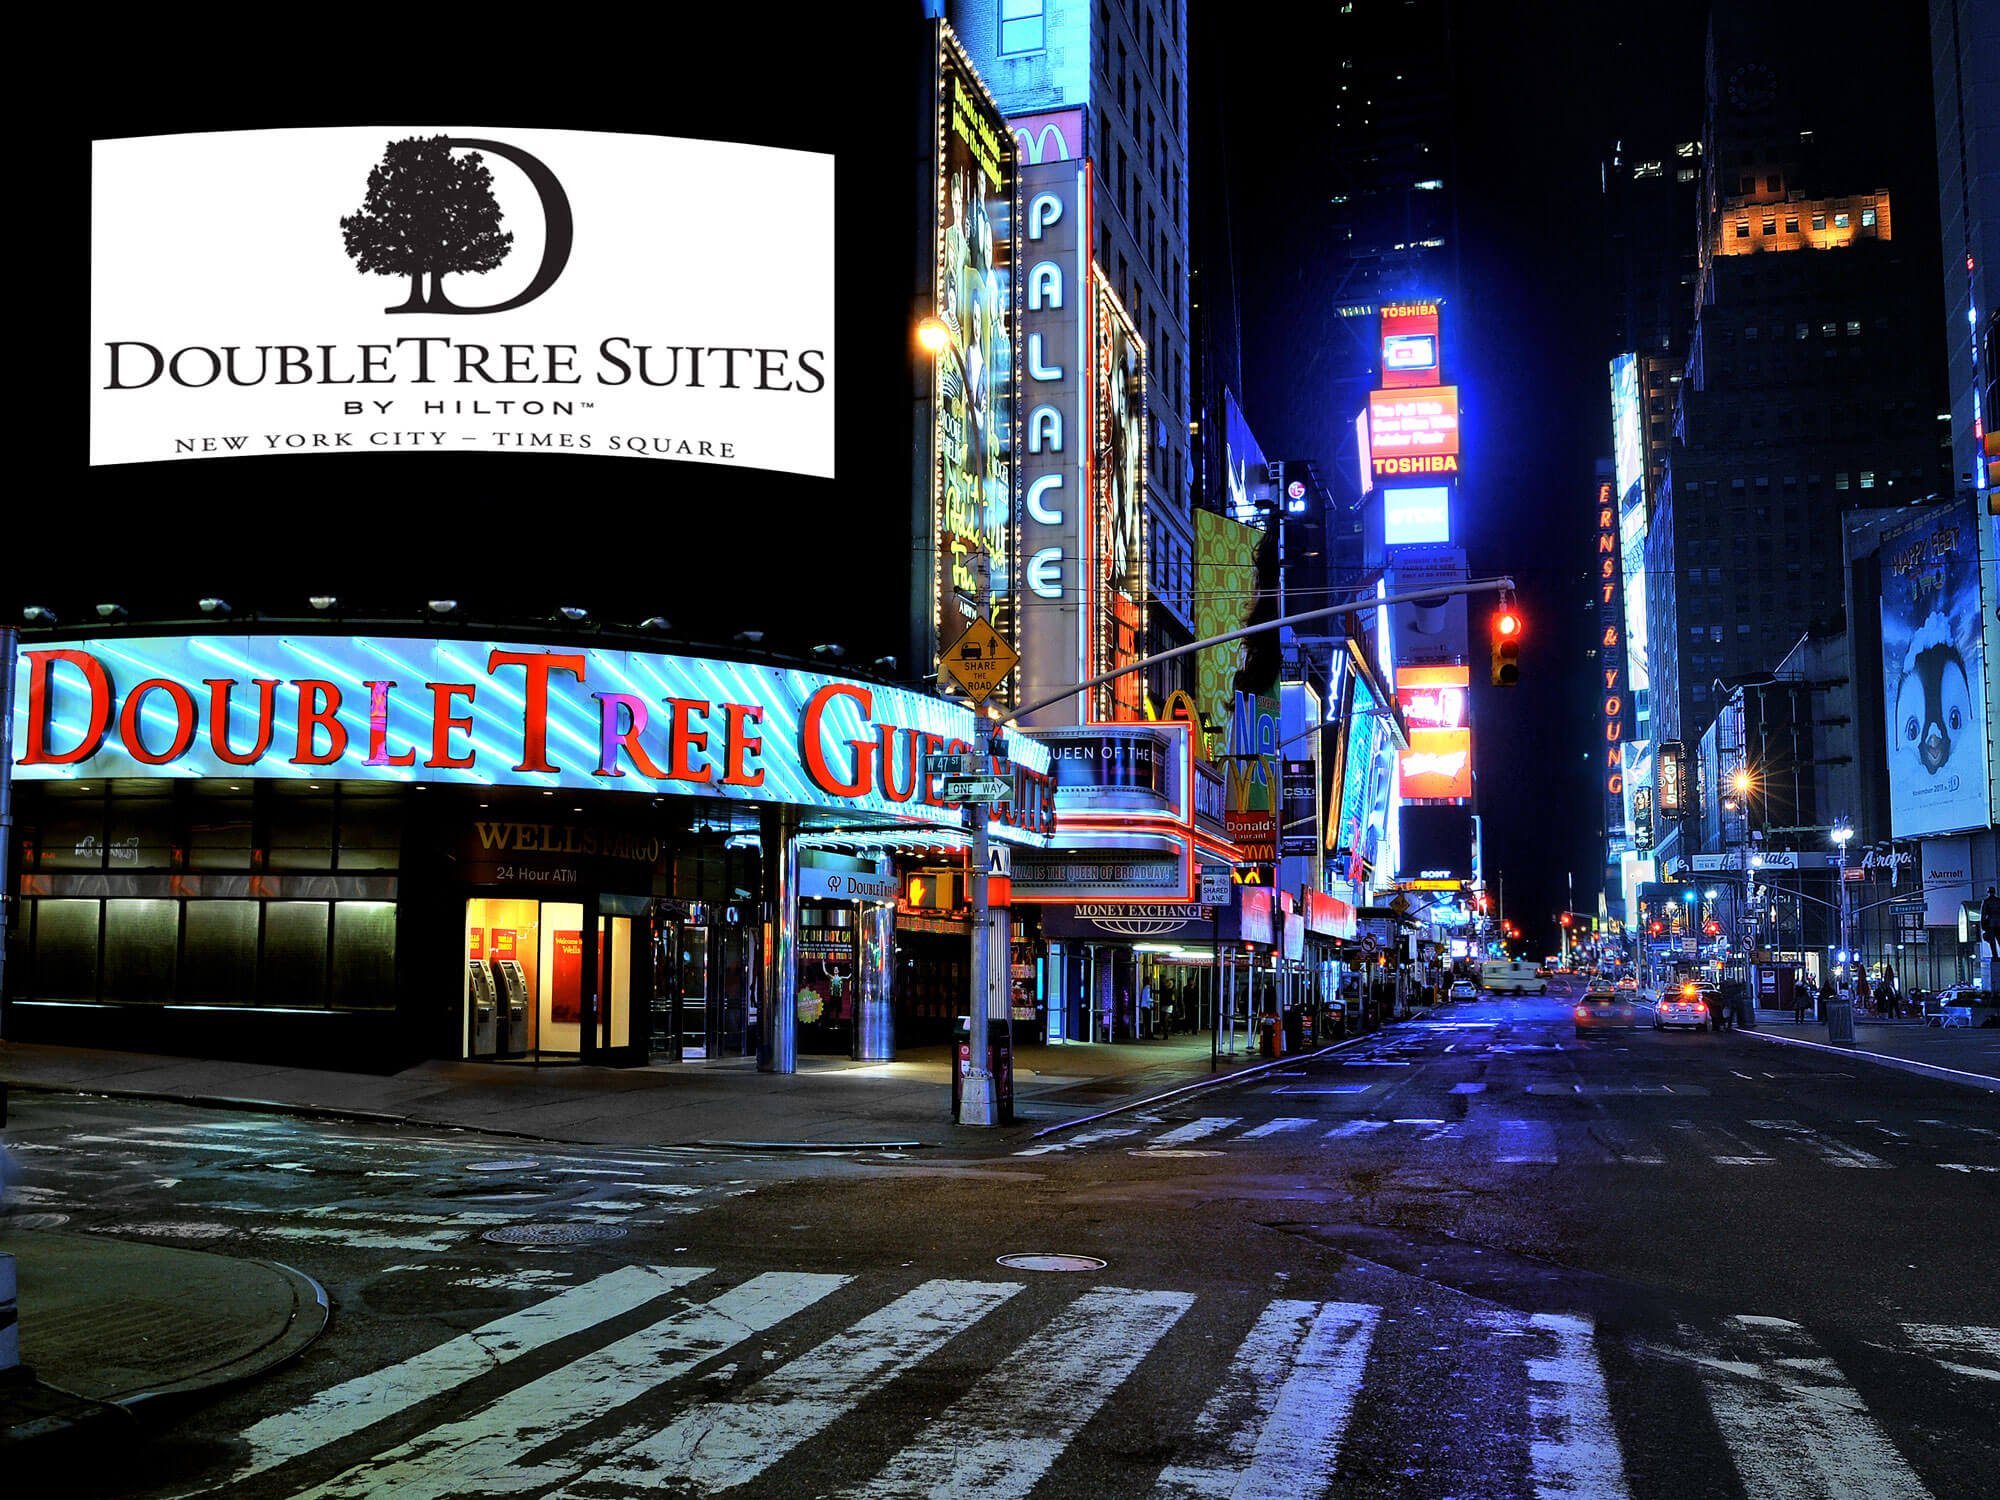 Doubletree Suites Hotel Times Square